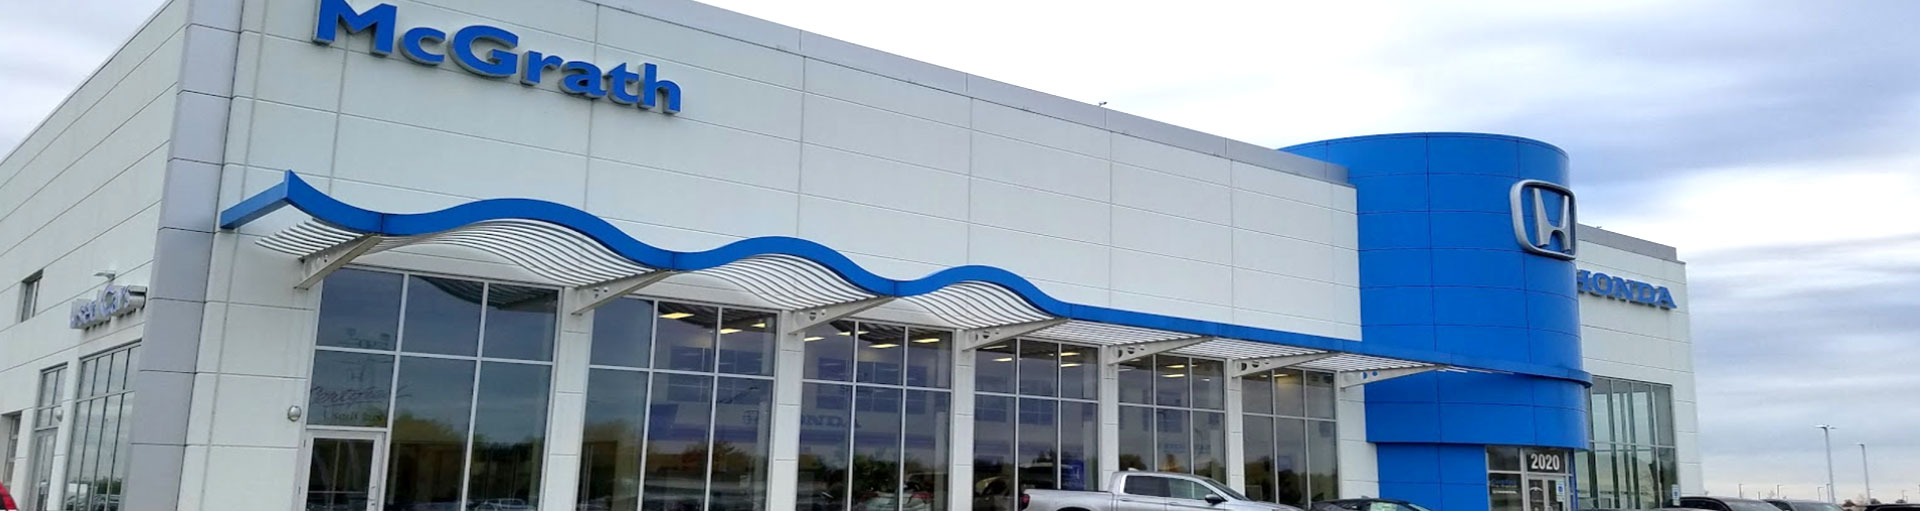 McGrath Honda Service Department